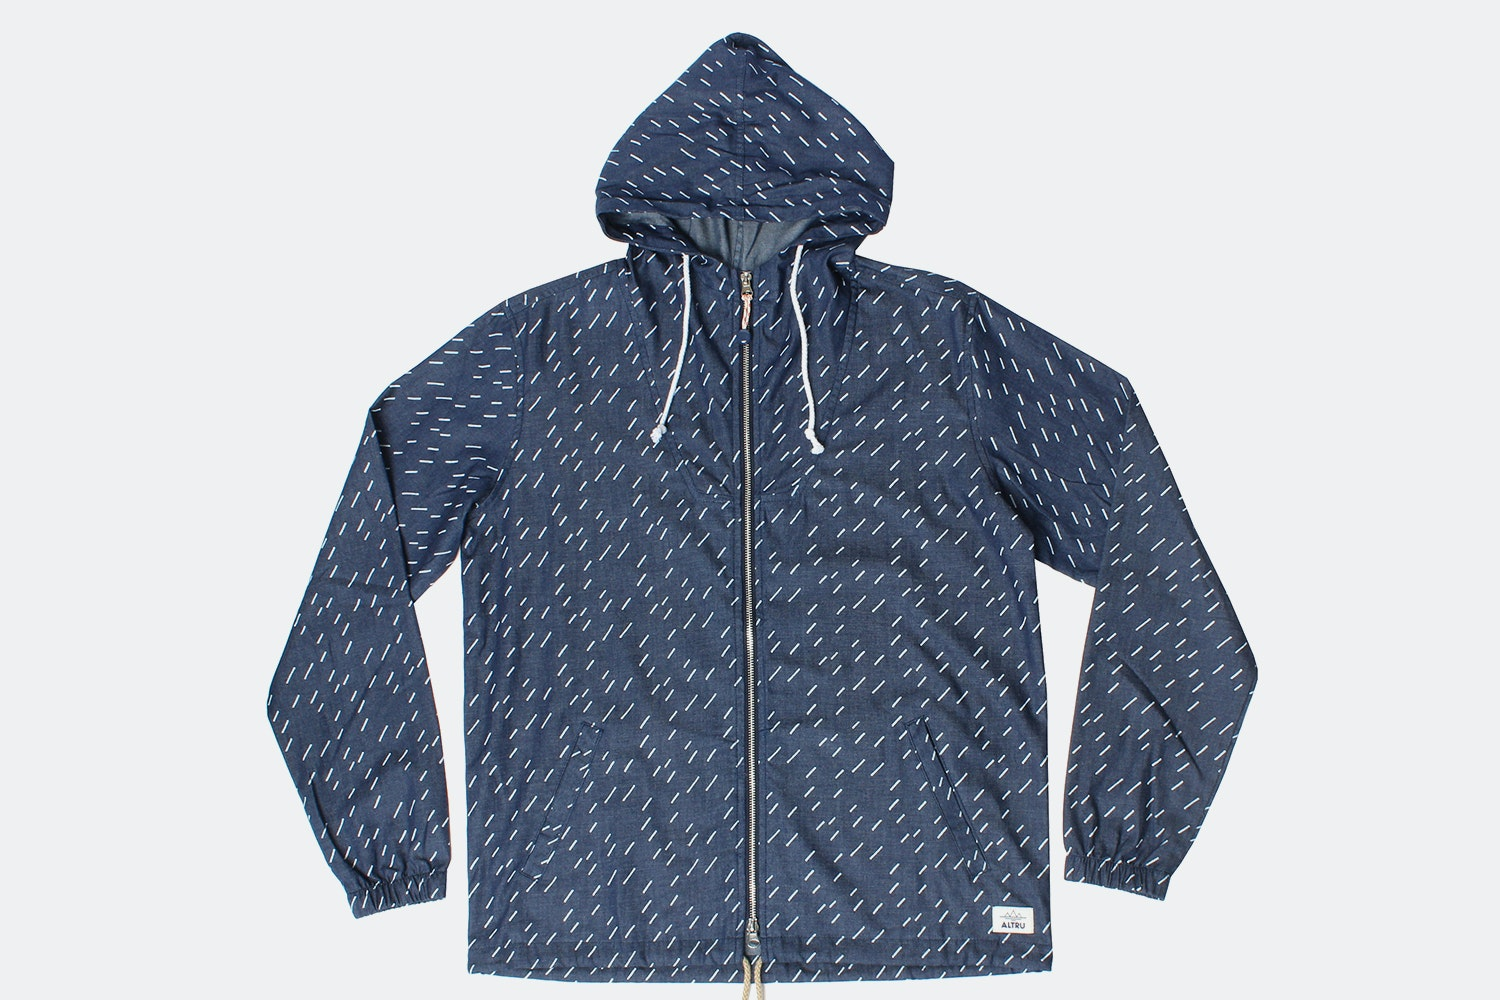 Heavy Showers Hoody Jacket (+ $53)